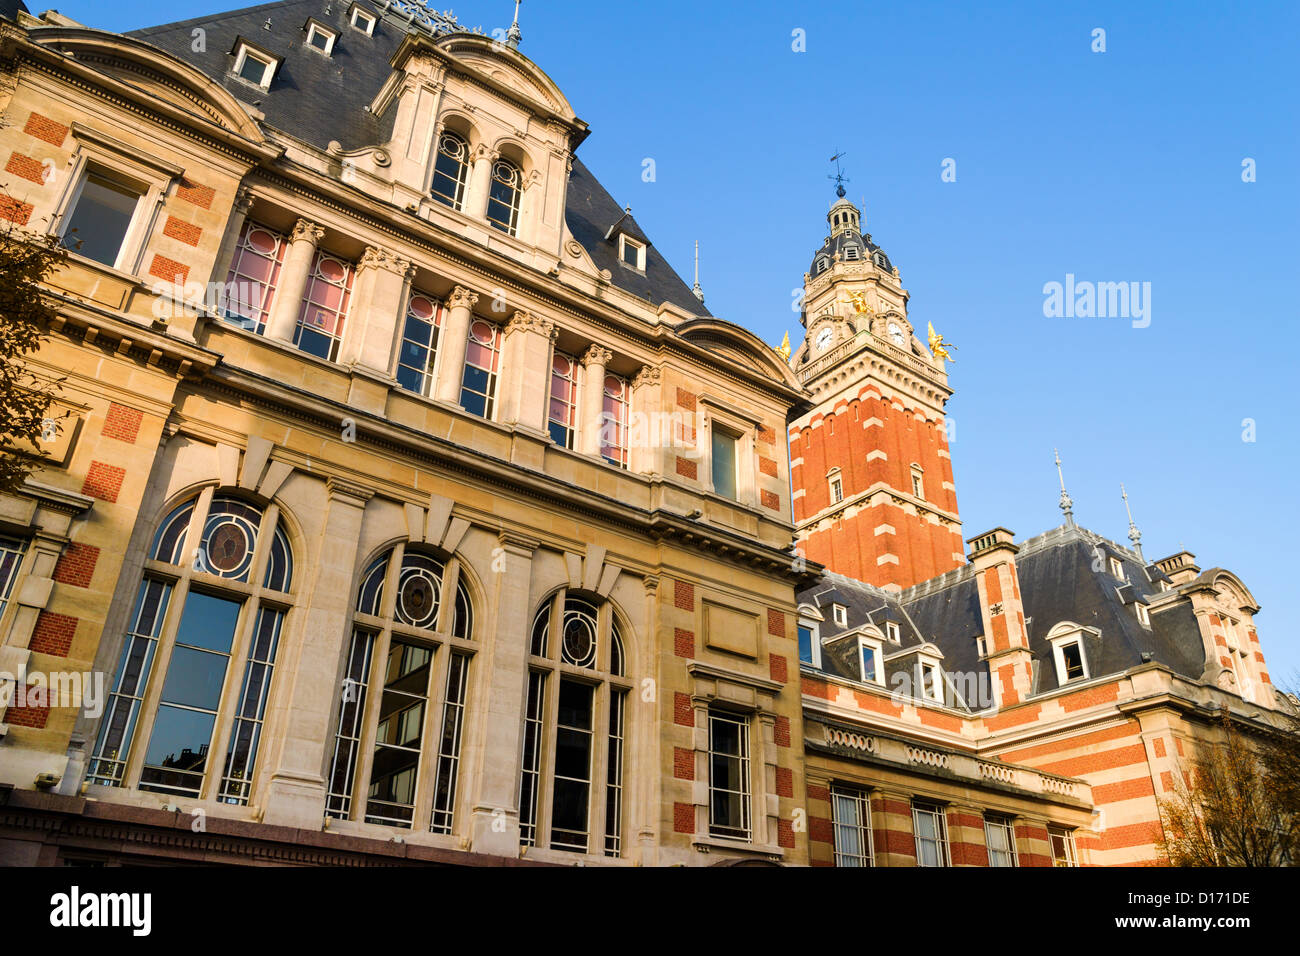 Saint-Gilles town hall in Brussels, Belgium. The 20th century French Renaissance style. - Stock Image